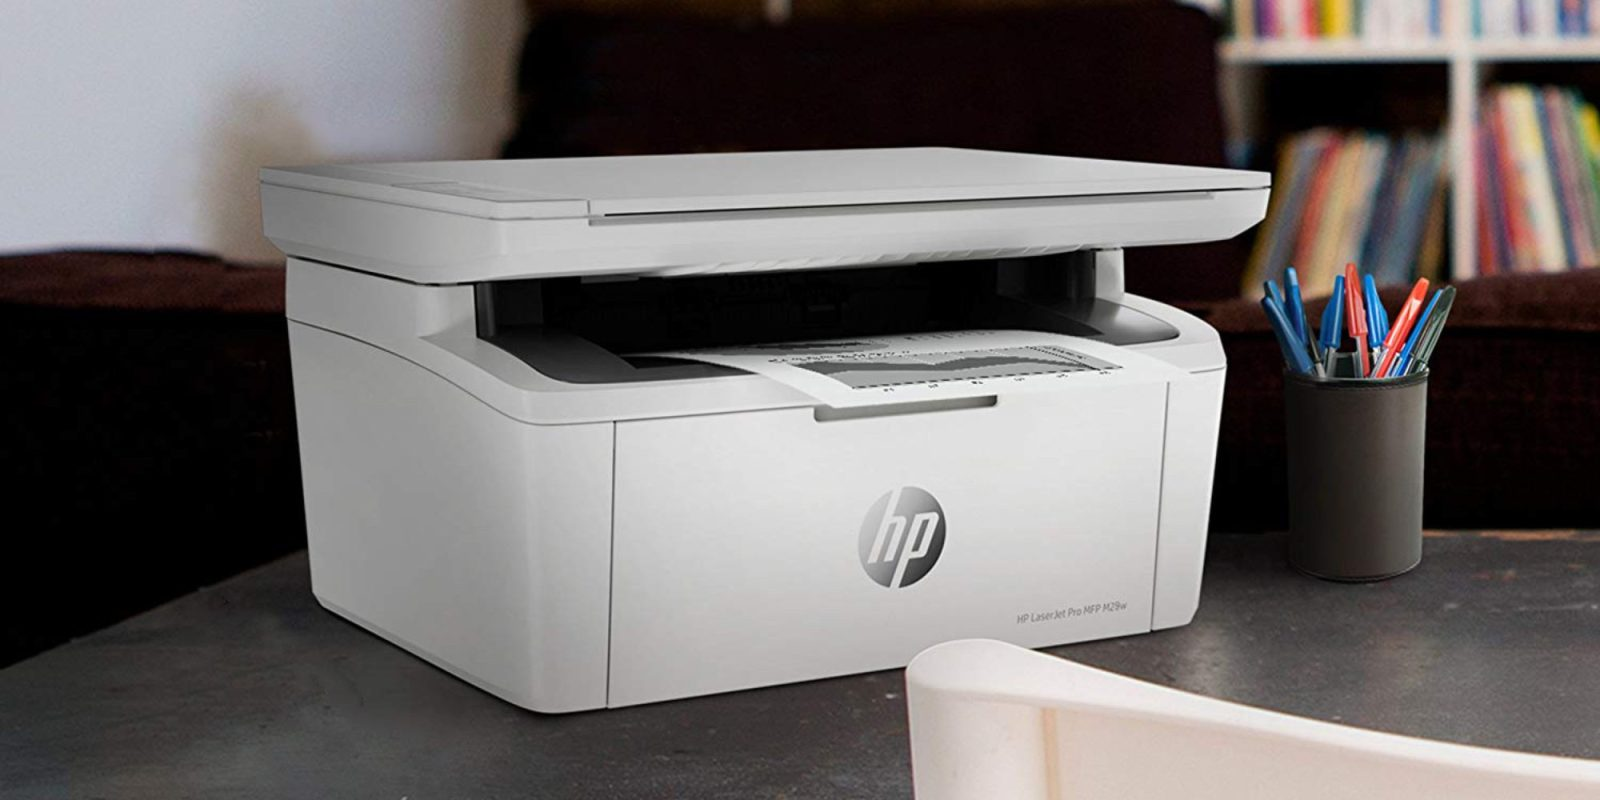 Score AirPrint with HP's compact LaserJet Pro AiO: $99 (Reg. up to $129)